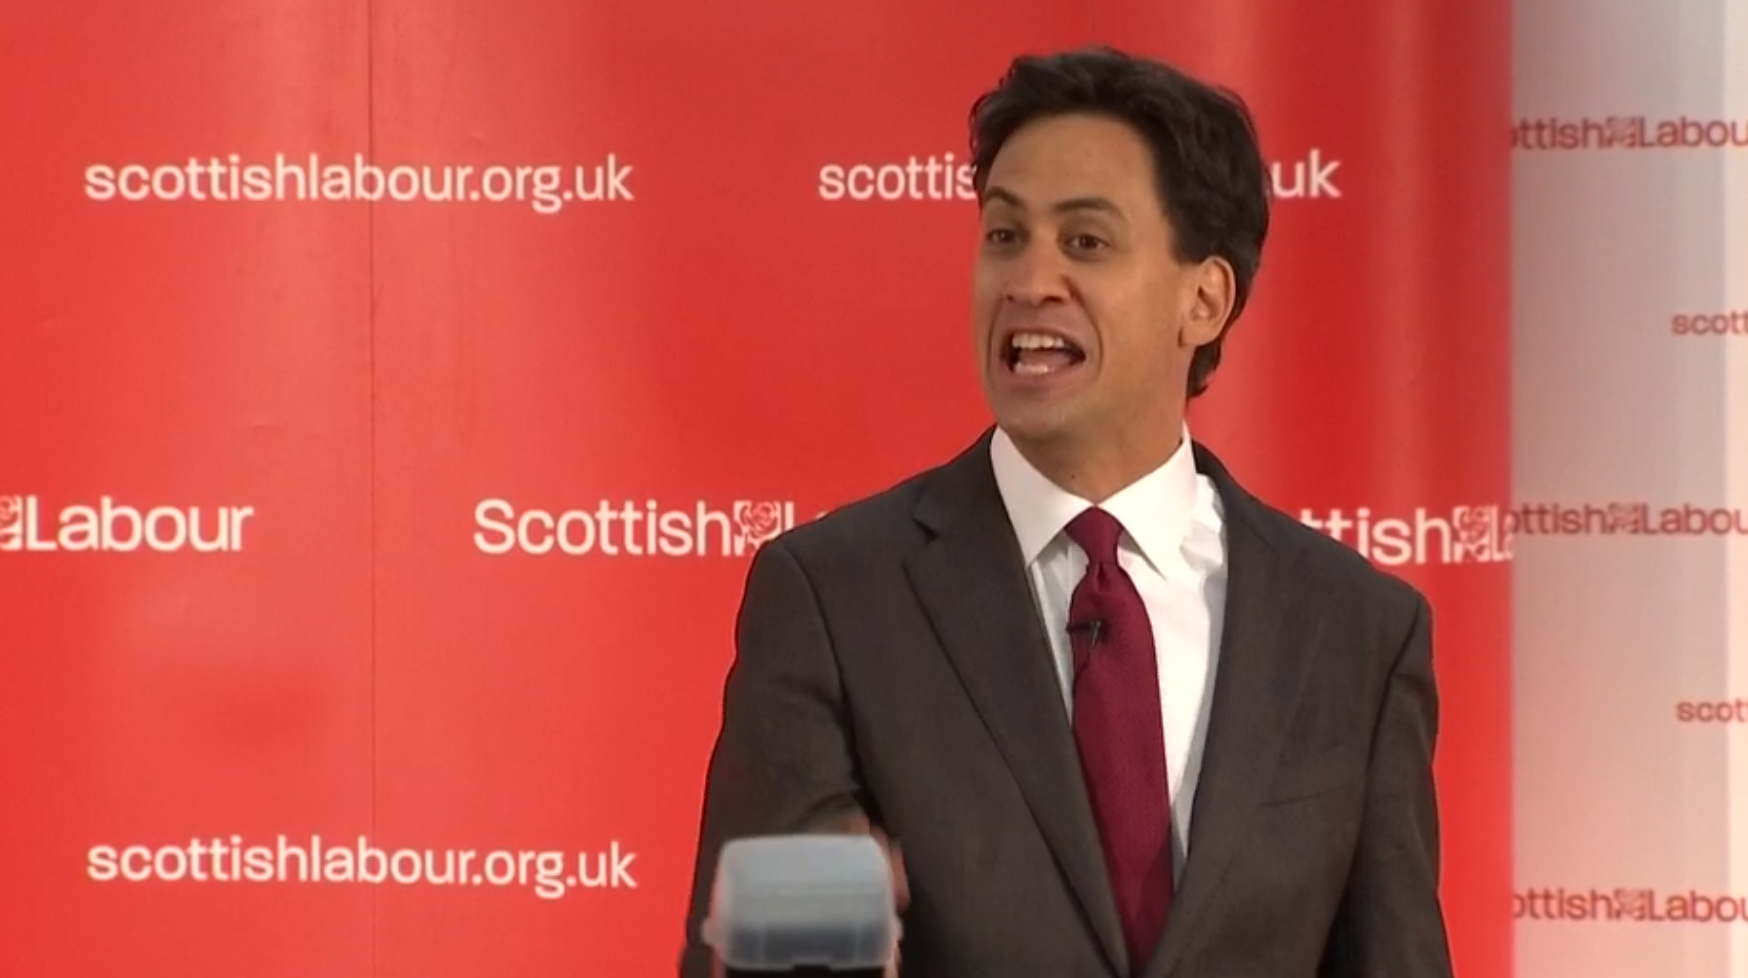 Ed Miliband Should Be Ashamed of The Referendum Performance, Instead He Will Gloat